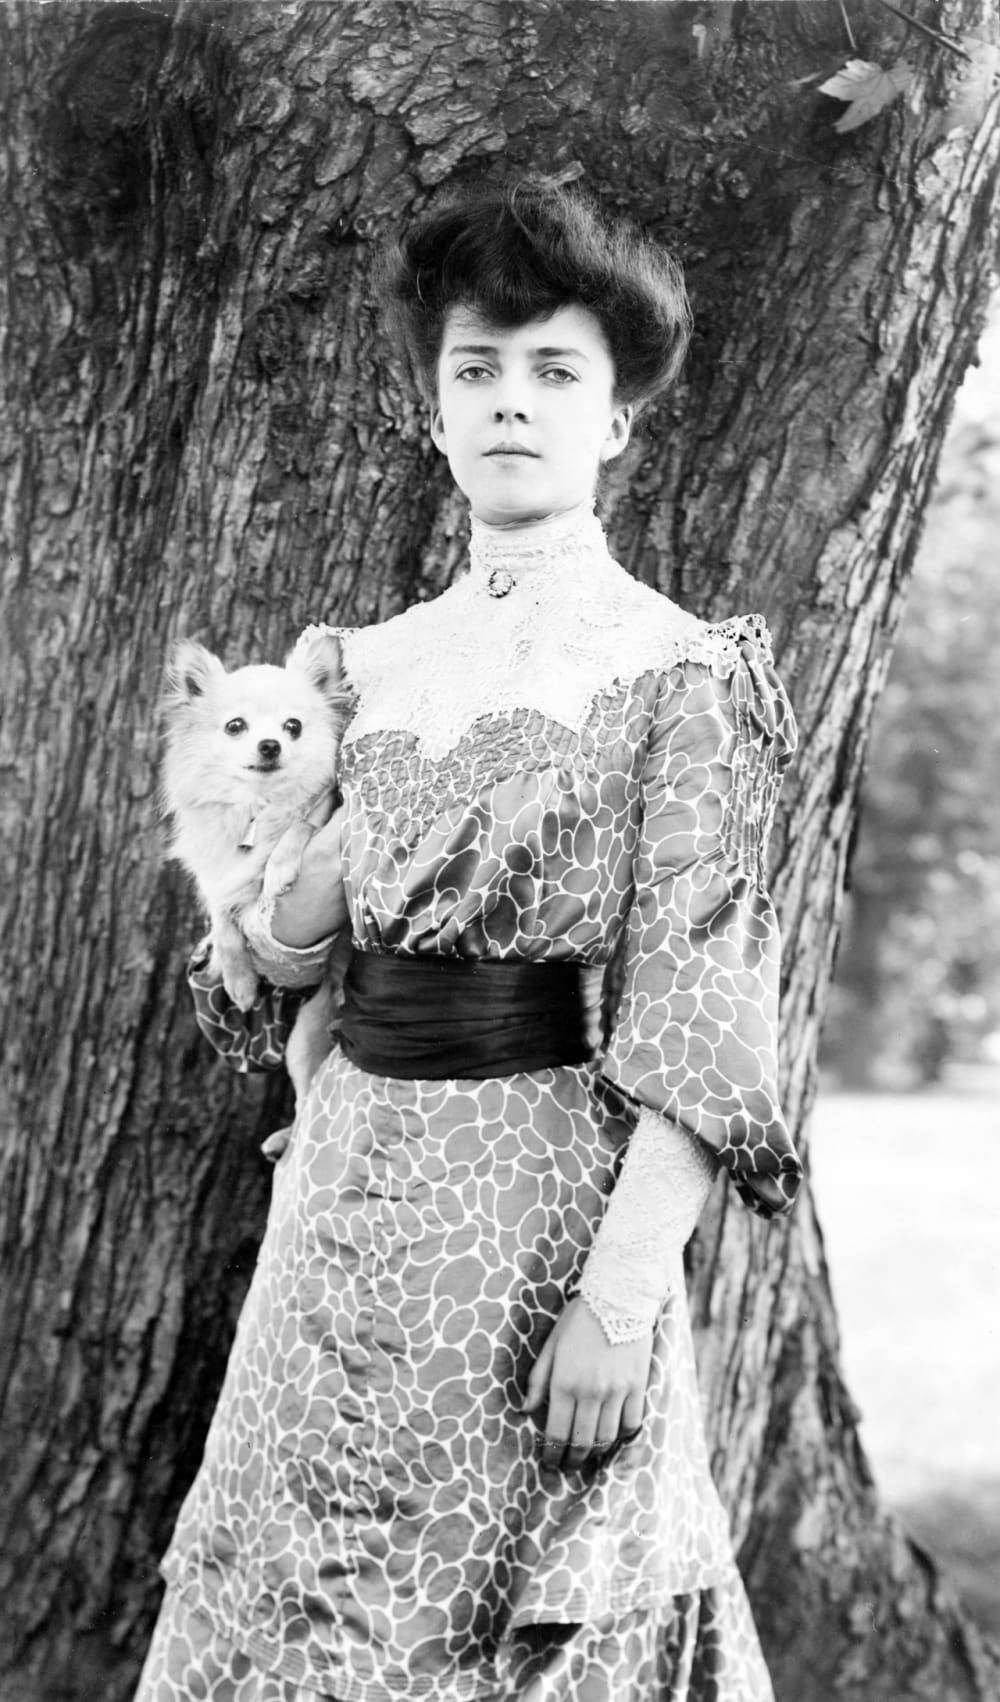 12. Alice Roosevelt in 1902